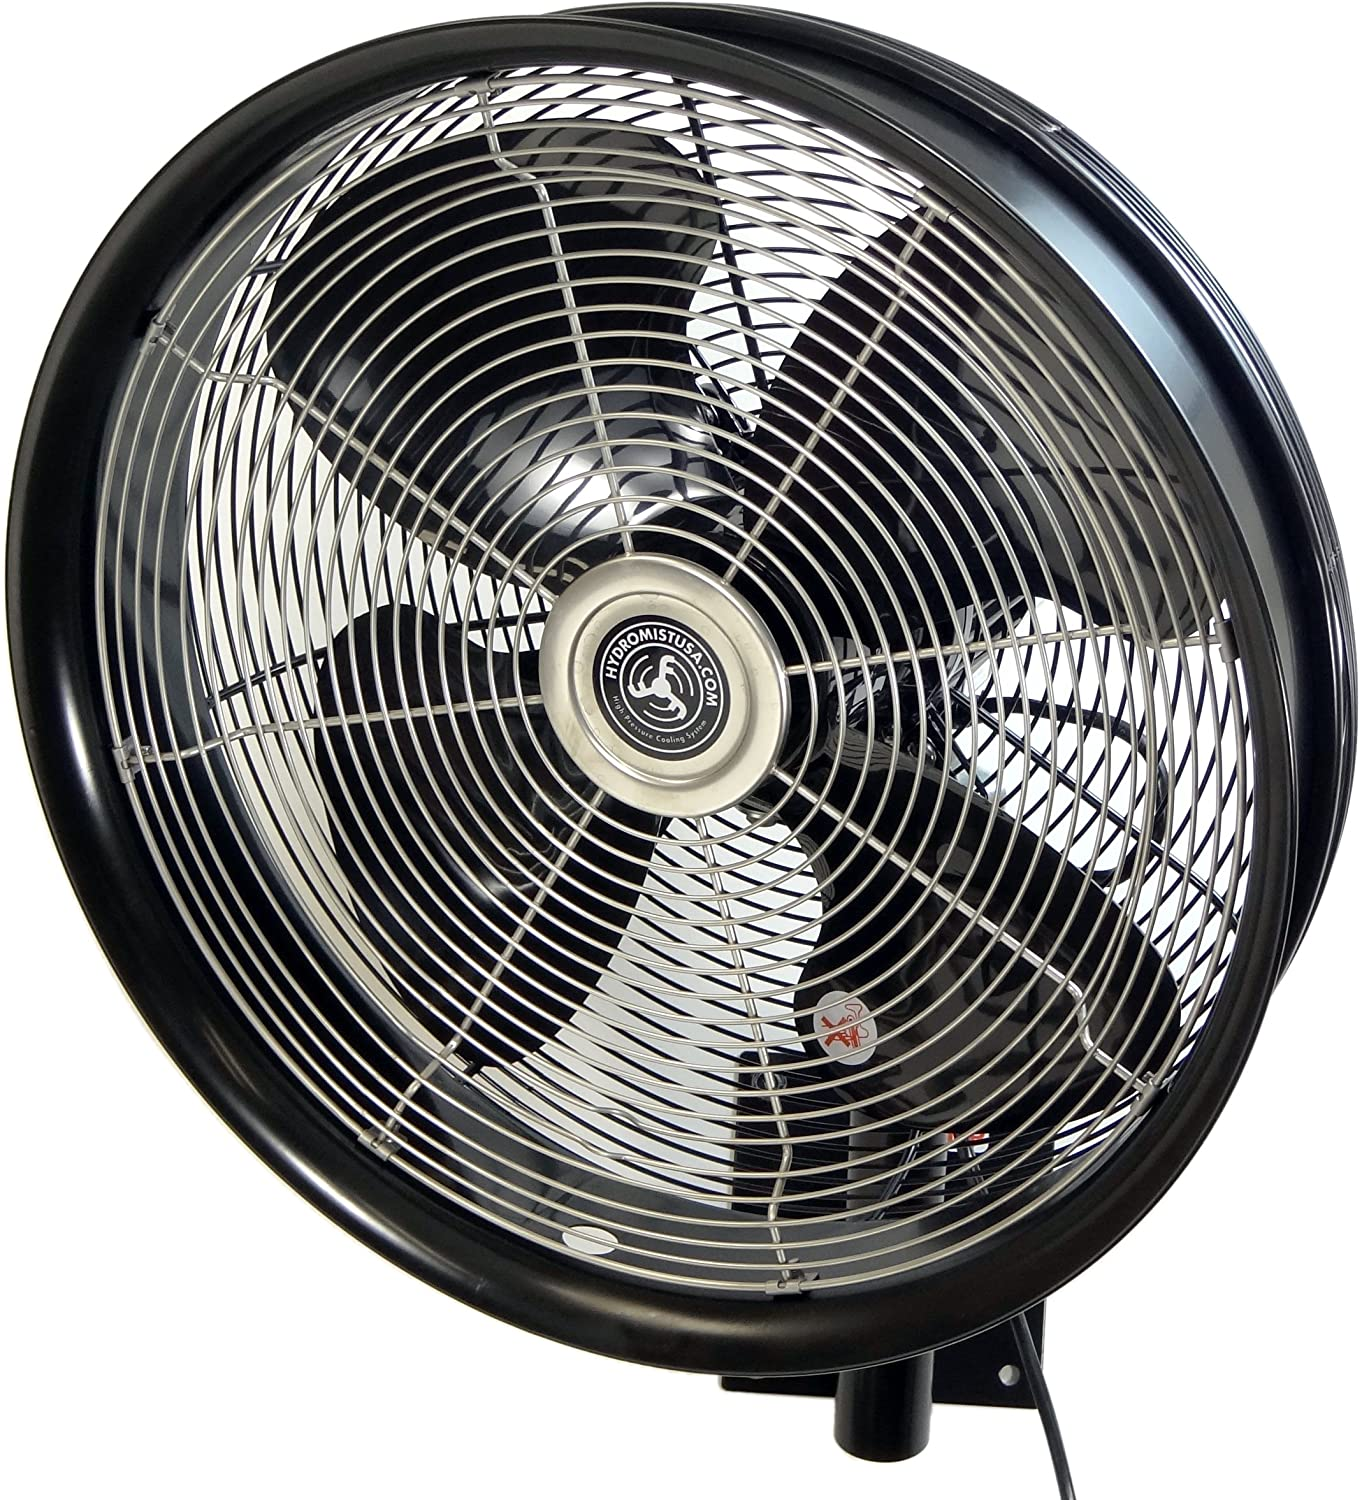 HydroMist F10-14-011 18-inch Shrouded Outdoor Wall Mount Oscillating Fan, 3 Speed On Cord, 0.15 HP, 1.05 Amps, Black